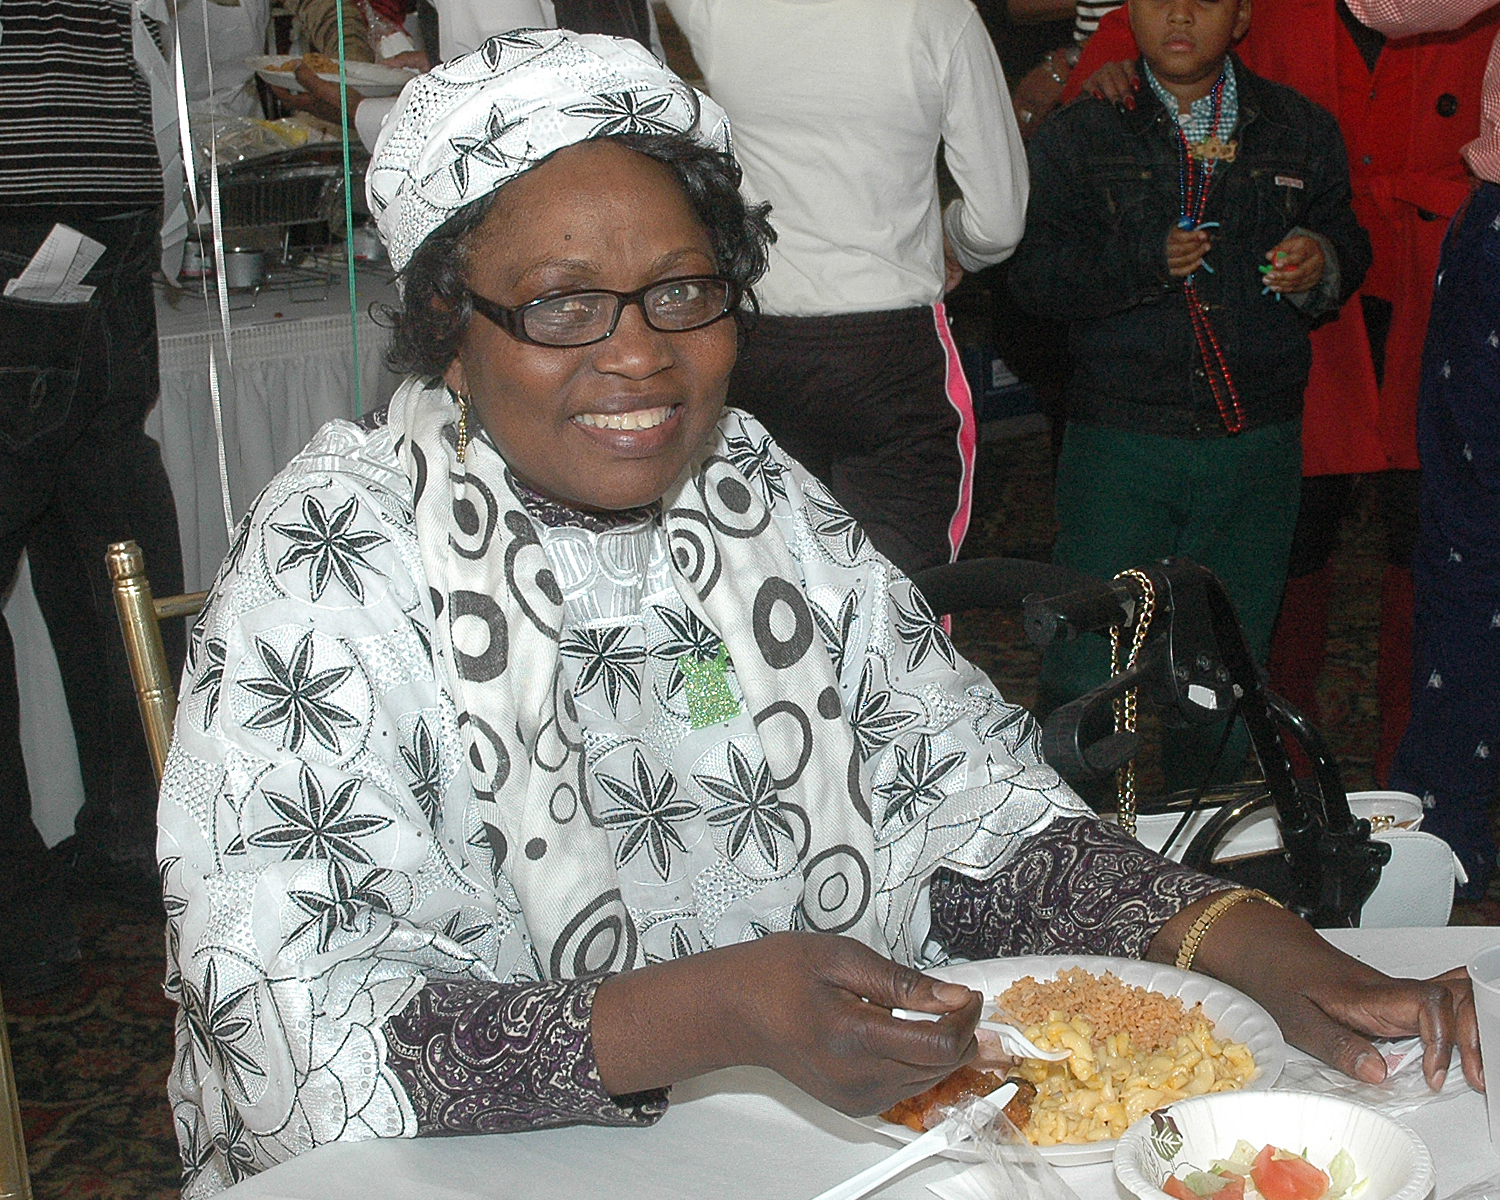 An attendee enjoying her meal